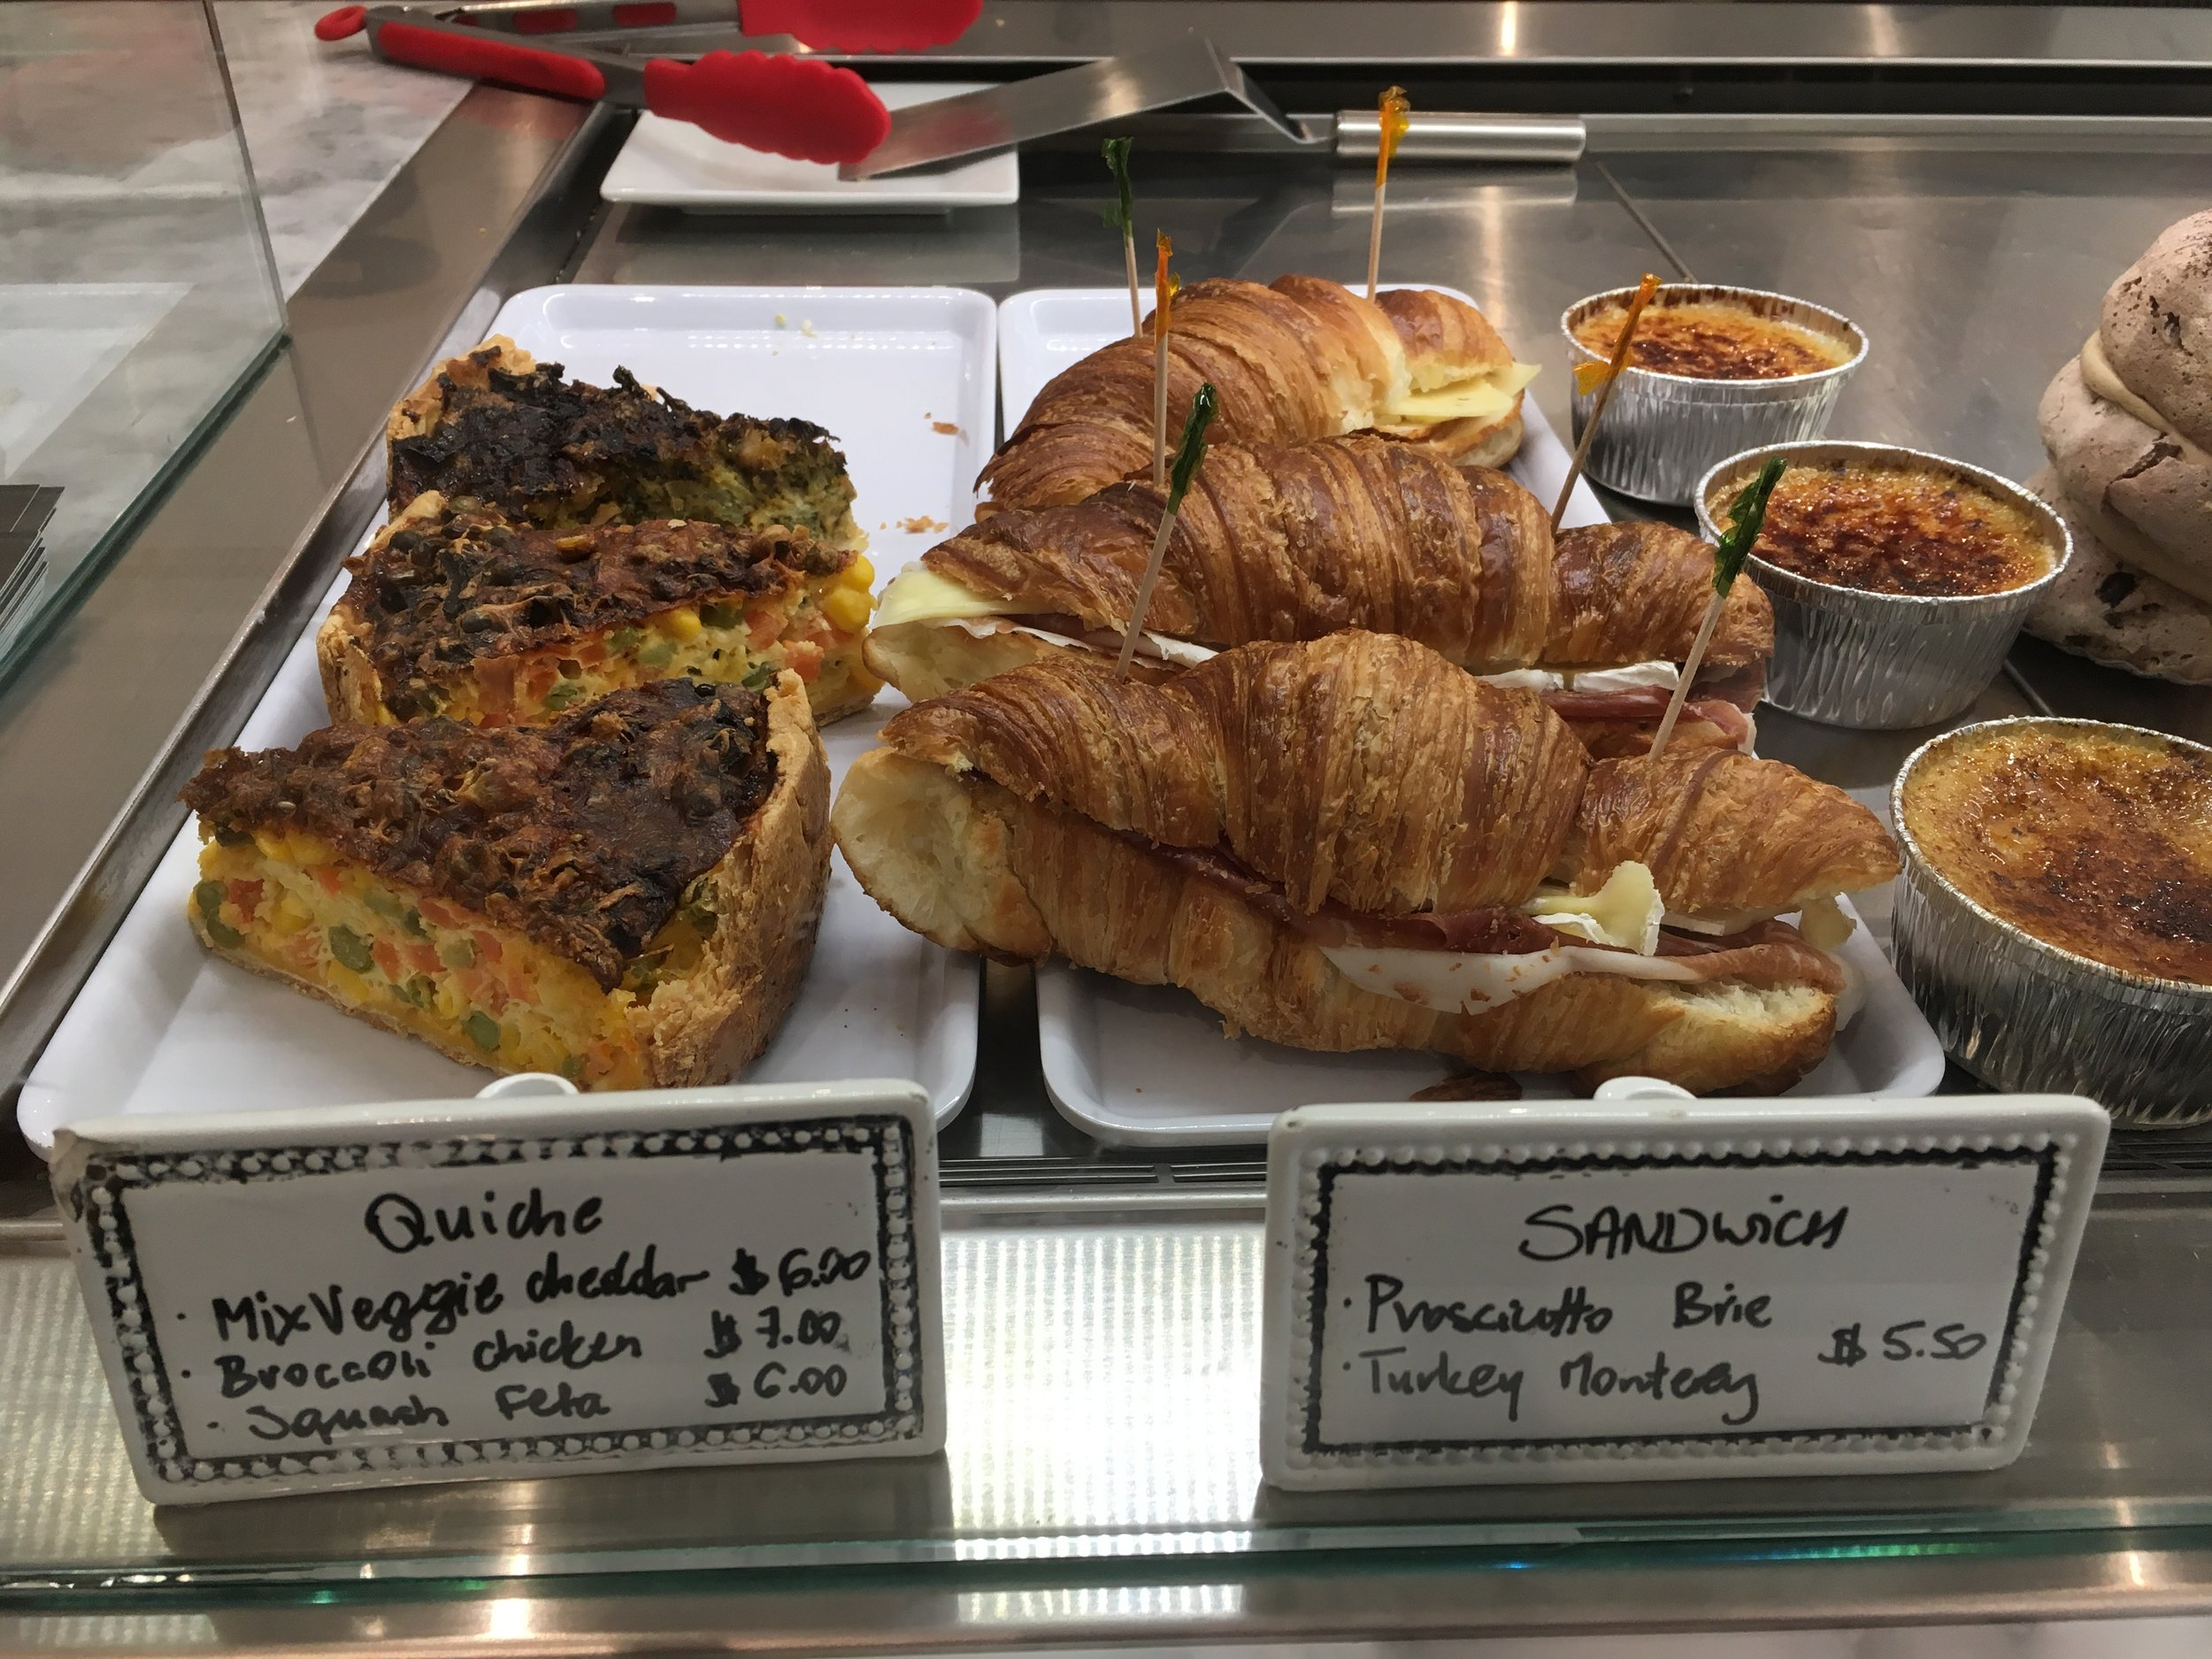 Yummy looking quiche and croissants